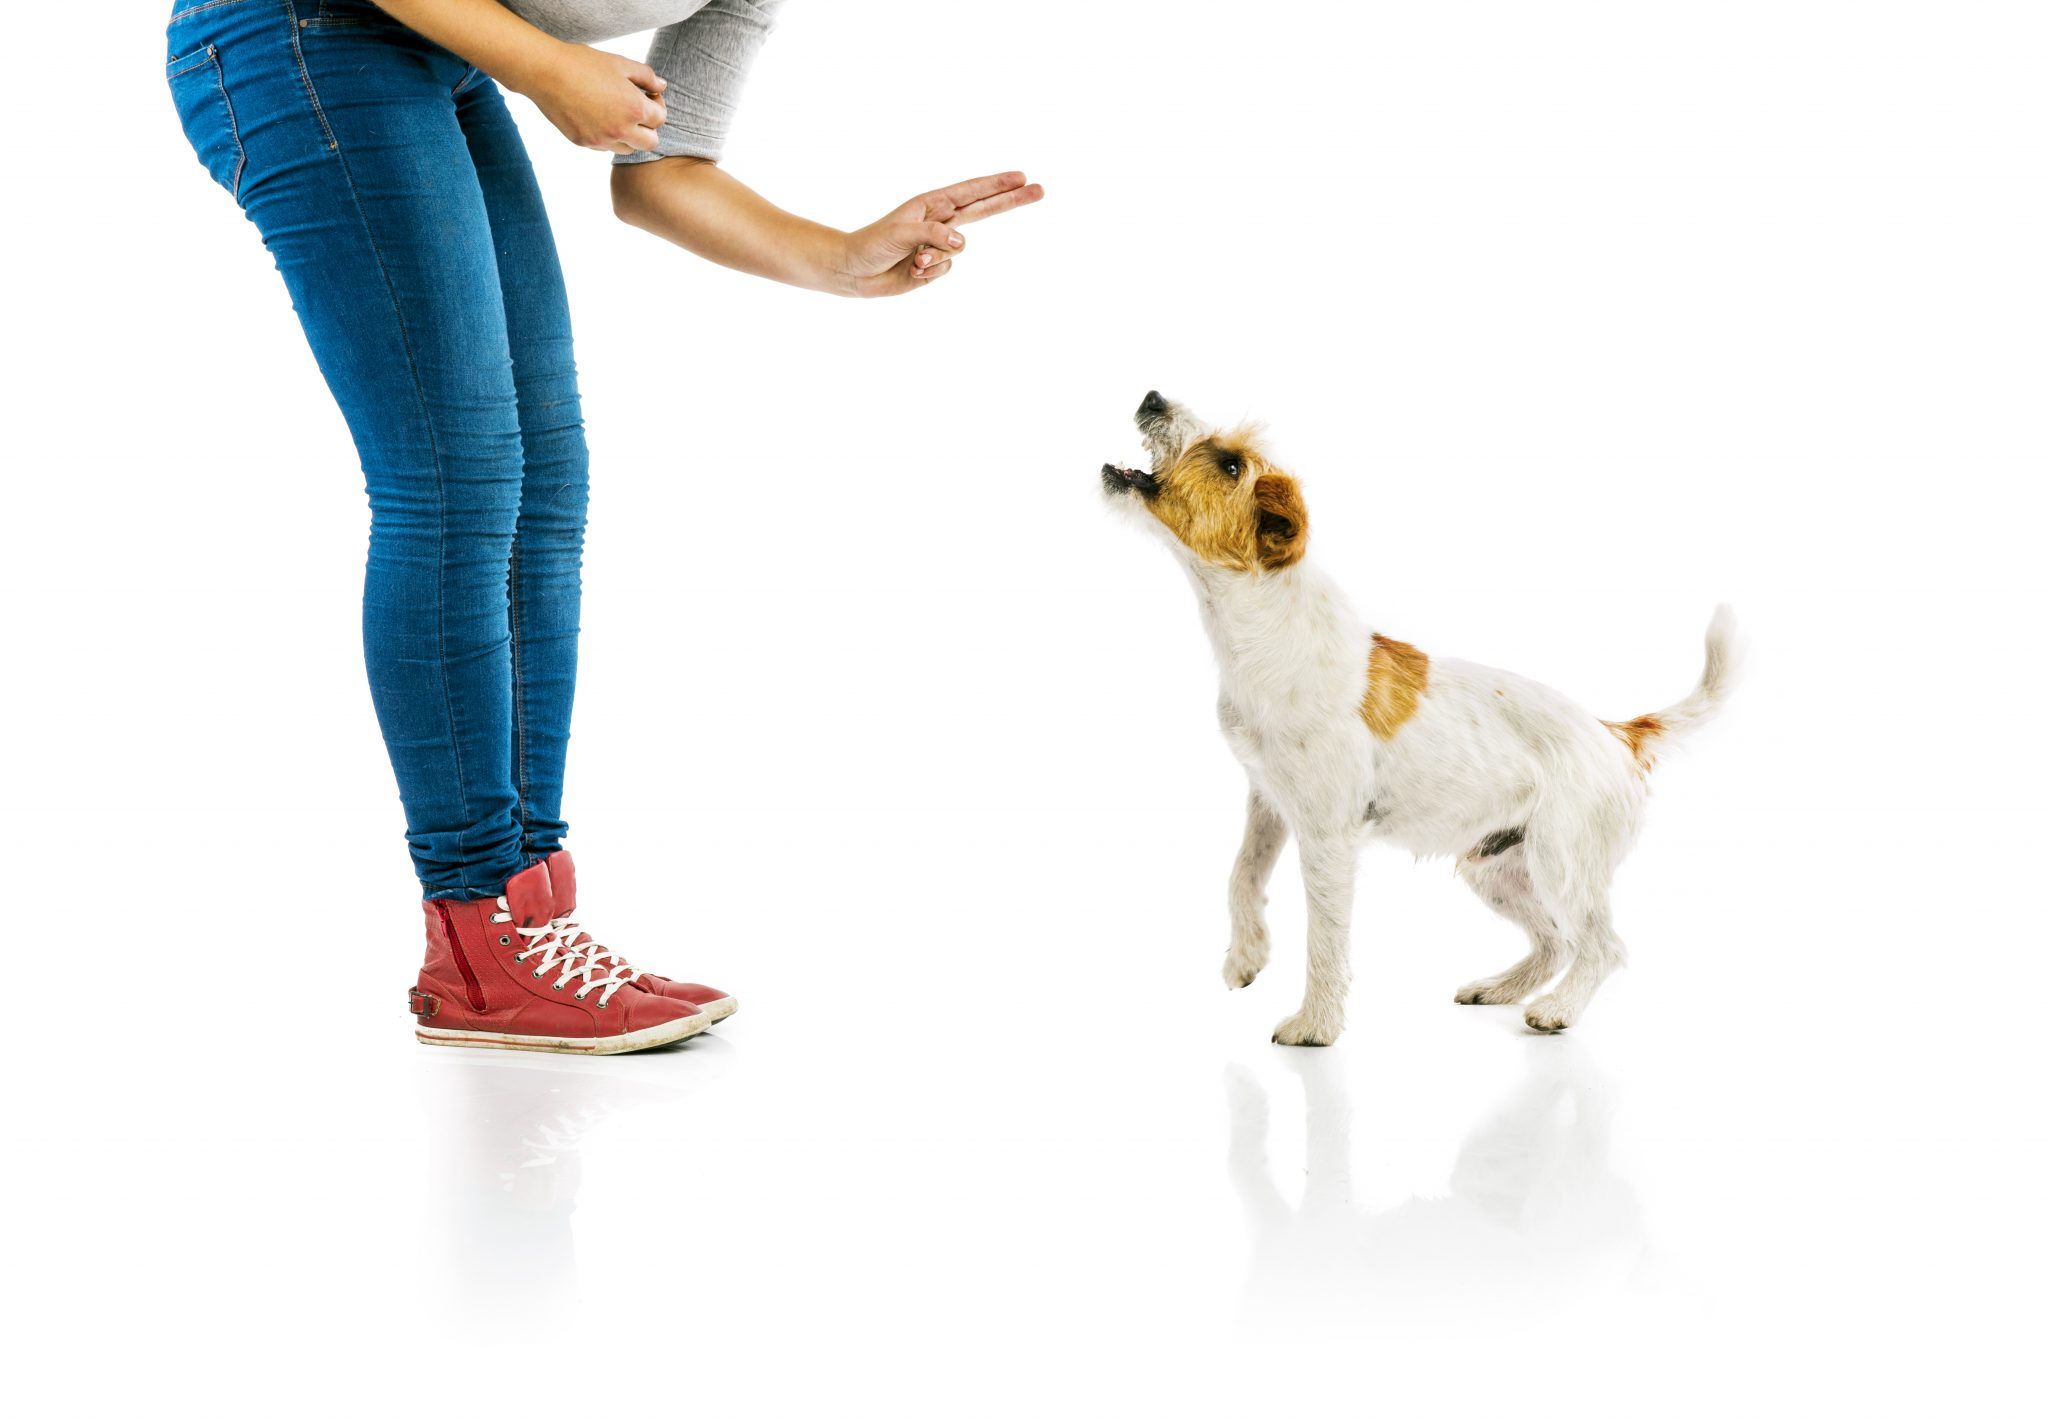 The Ultimate Dog Training Guide 30 Tips and Tricks on How to Train Your Dog2